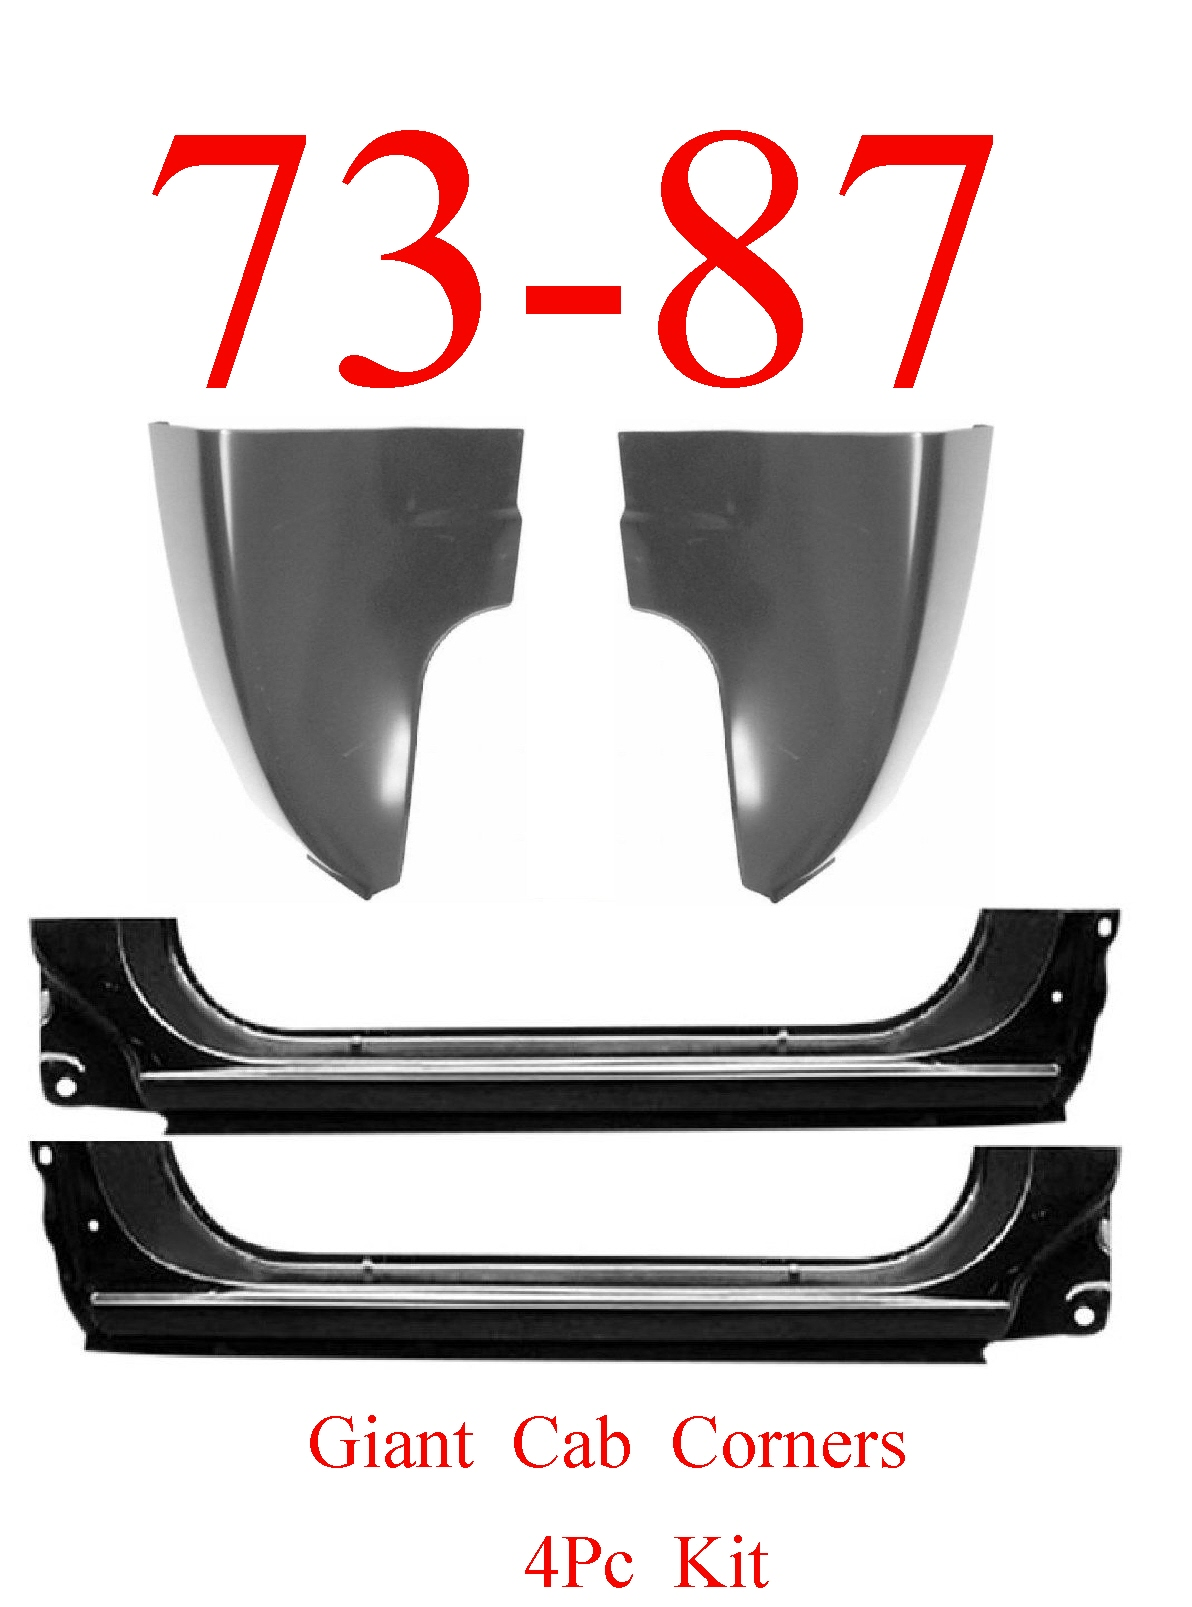 73-87 4Pc Giant Extended Rocker Panel & Cab Corner Kit